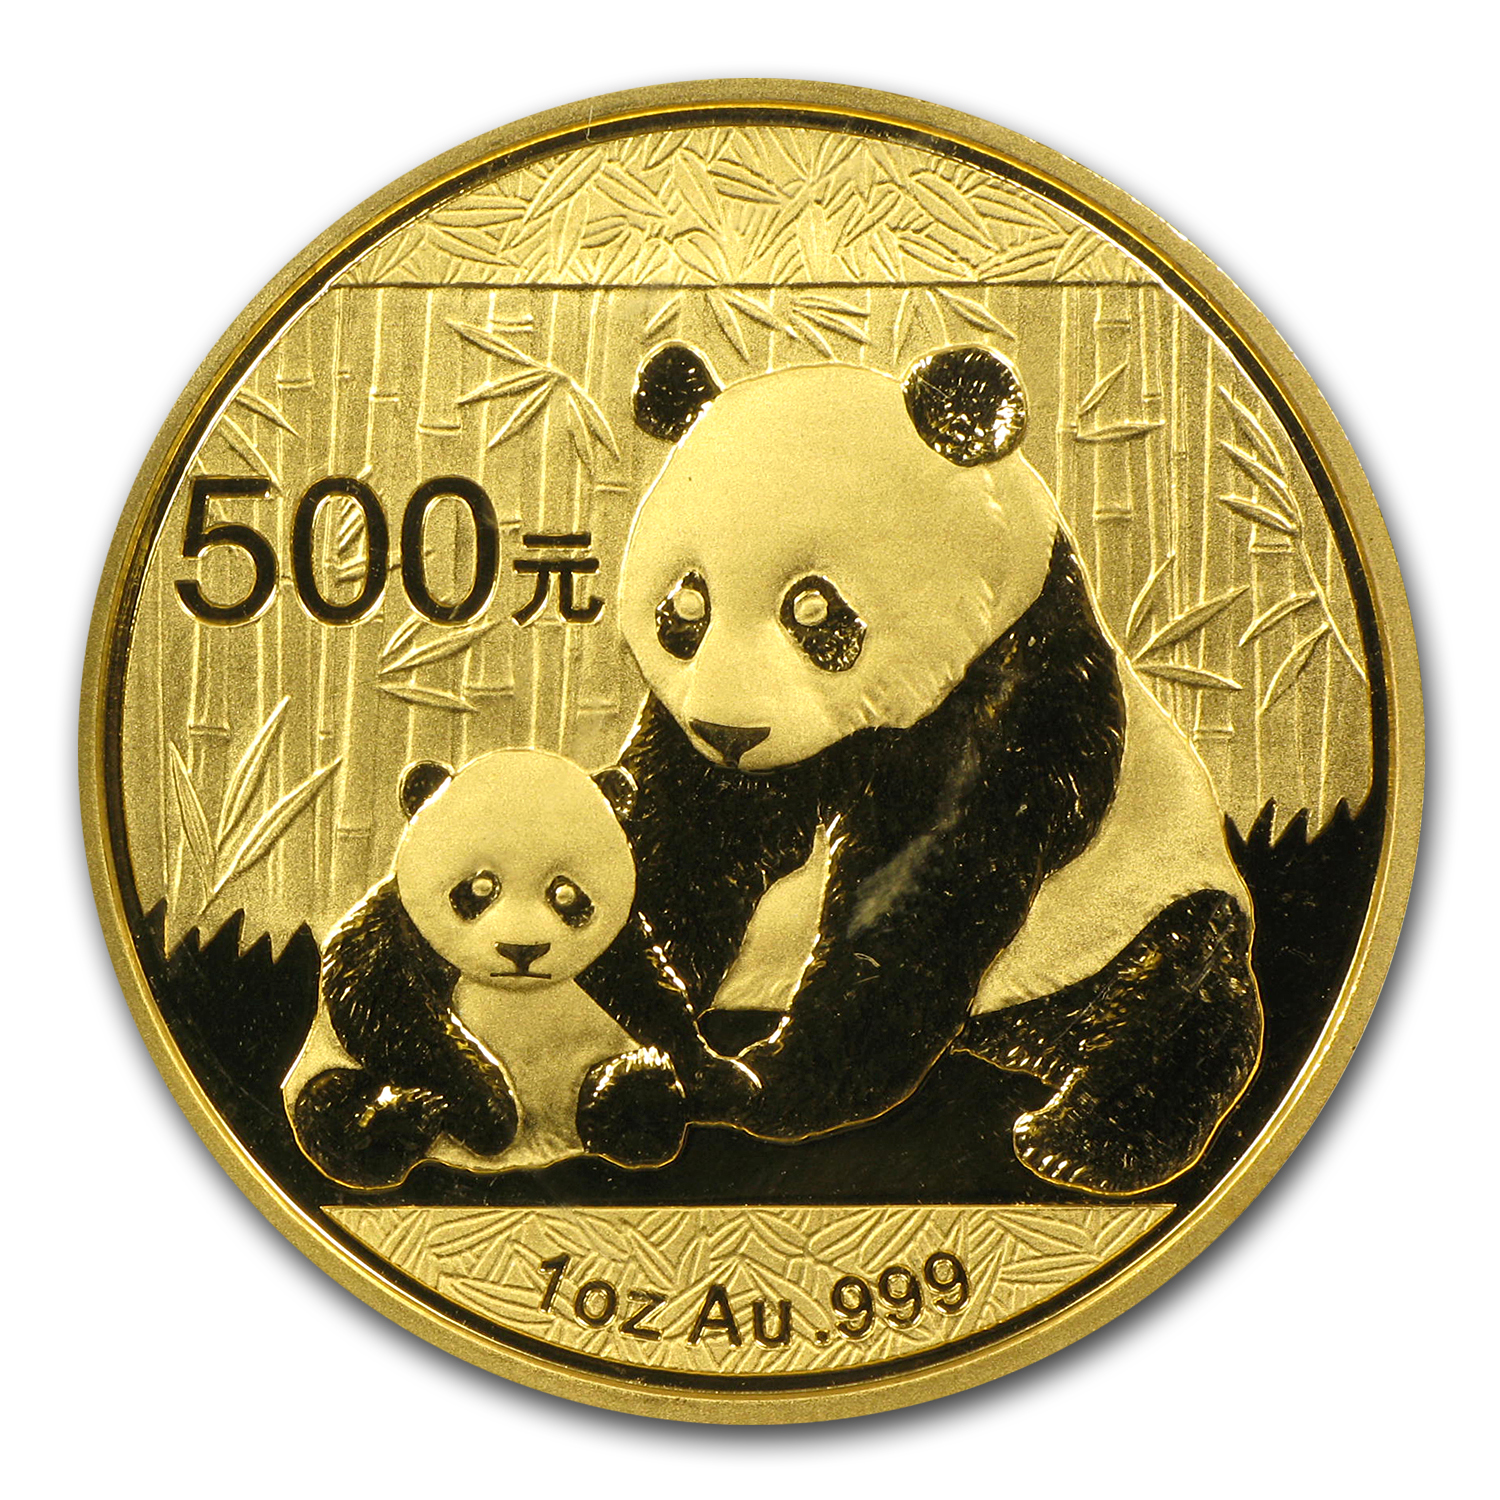 2012 China 1 oz Gold Panda BU (Sealed)